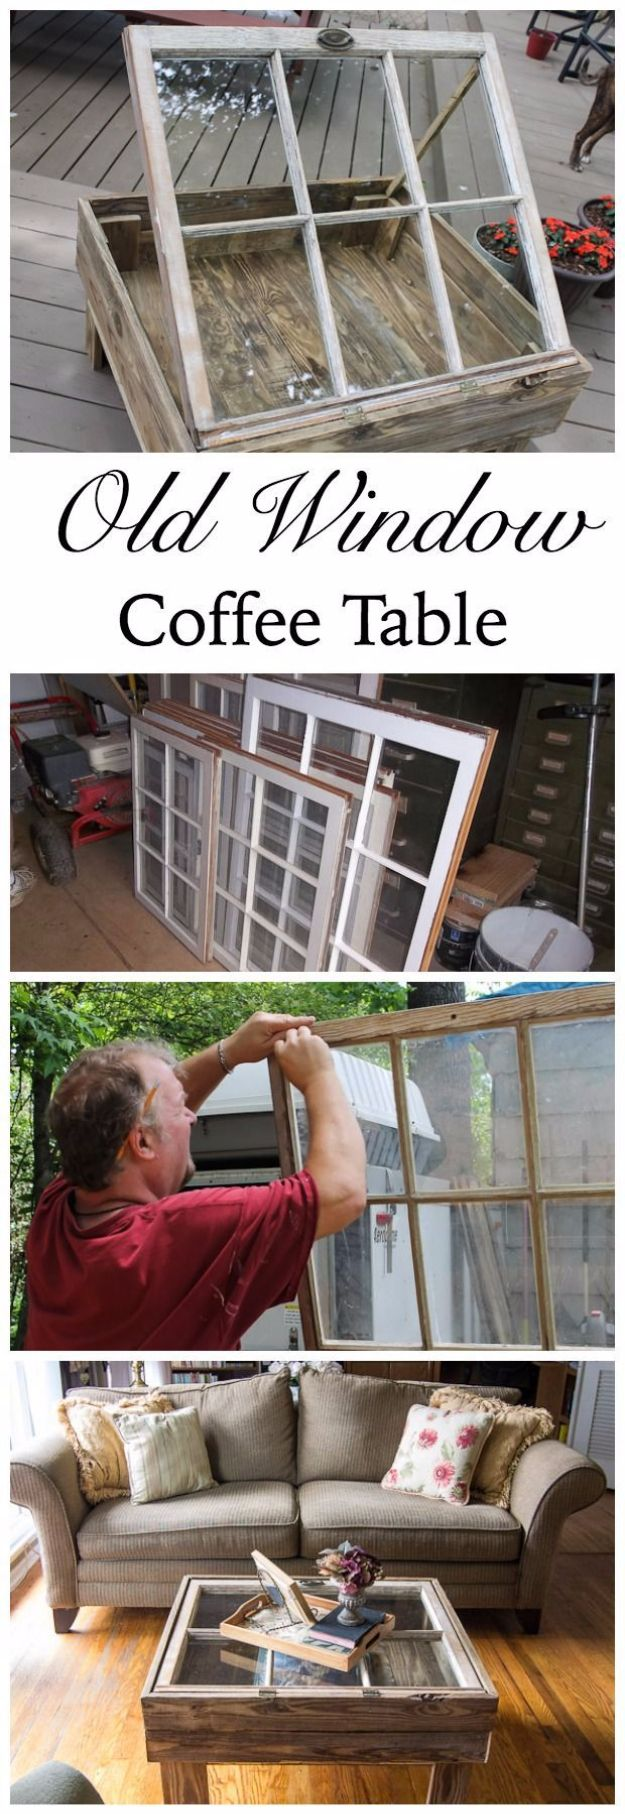 Easy DIY Furniture Ideas   Upcycling Projects with Old Windows   DIY Rustic Coffee Table Ideas   DIY Projects and Crafts by DIY JOY